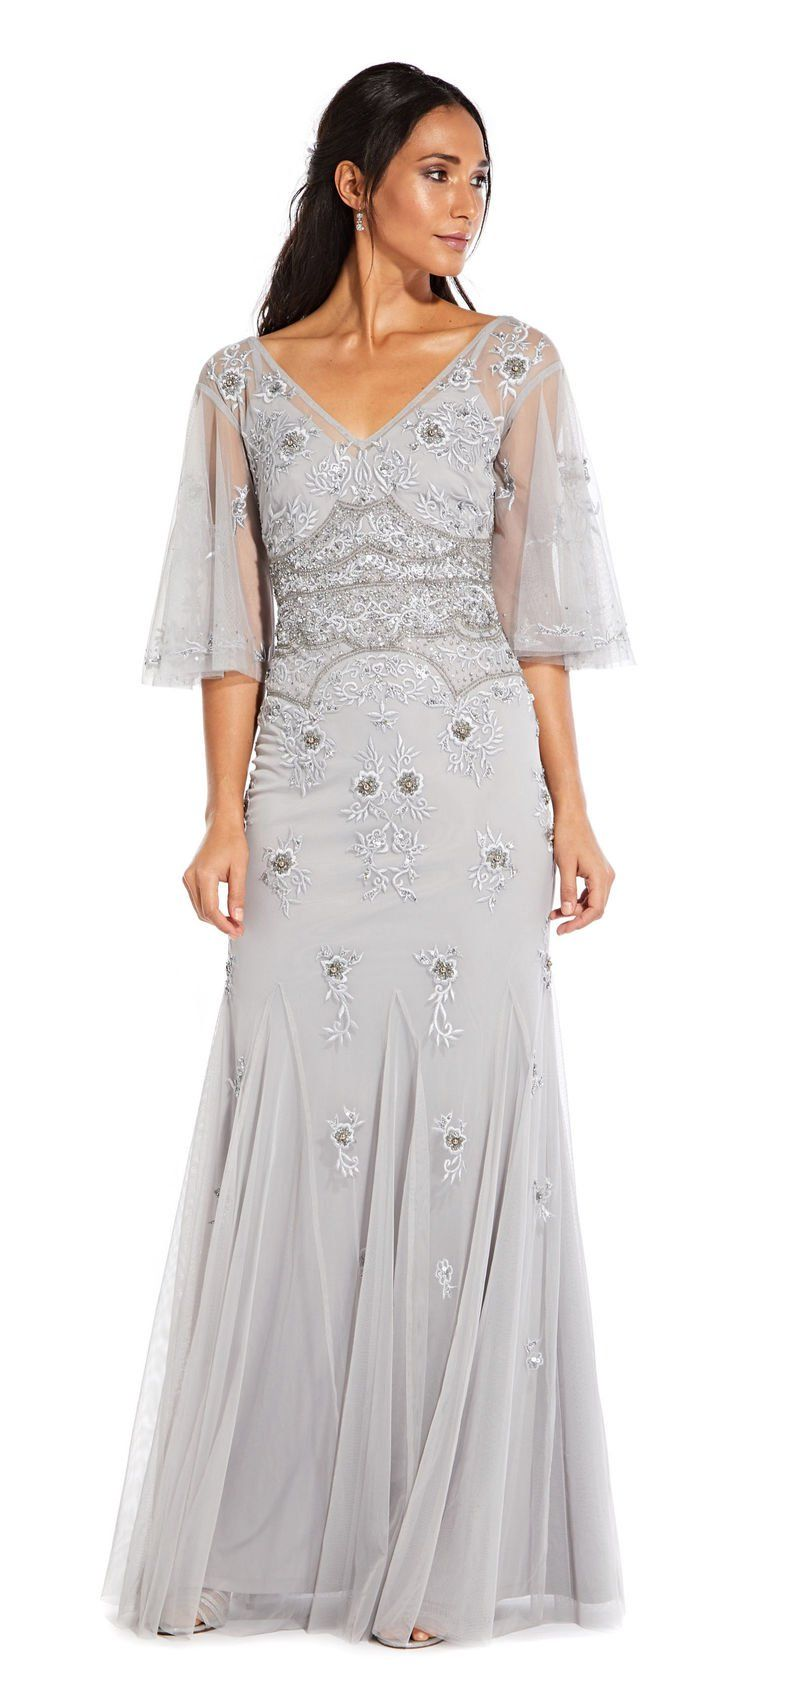 Floral Beaded Gown with Sheer Flutter Sleeves Formal